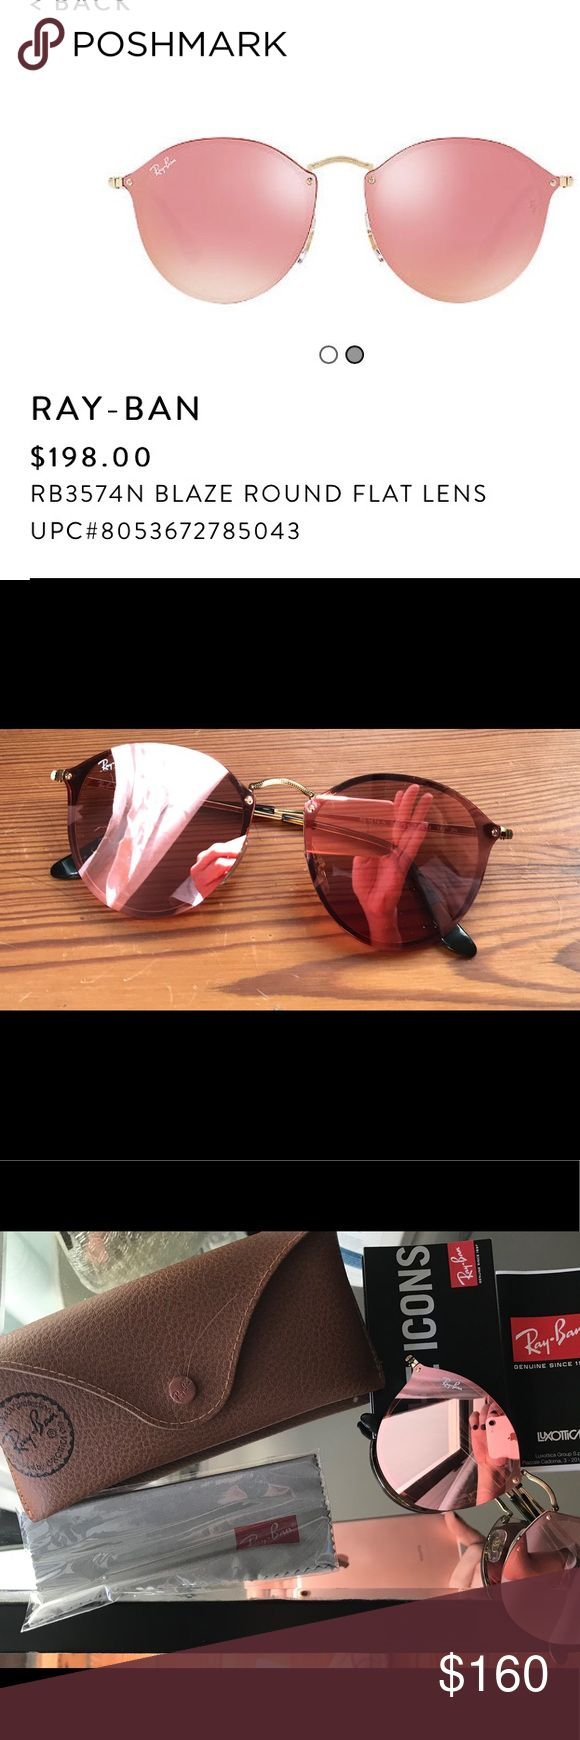 Rose Gold Mirror Ray Bans Never Worn! Never worn Ray Bans I got as a gift a week ago and just don't like pink (I know). They're blaze round pink mirror aviators with case and everything in the photo, basically brand new. These sell for 198 at the store, make an offer! Ray-Ban Accessories Sunglasses